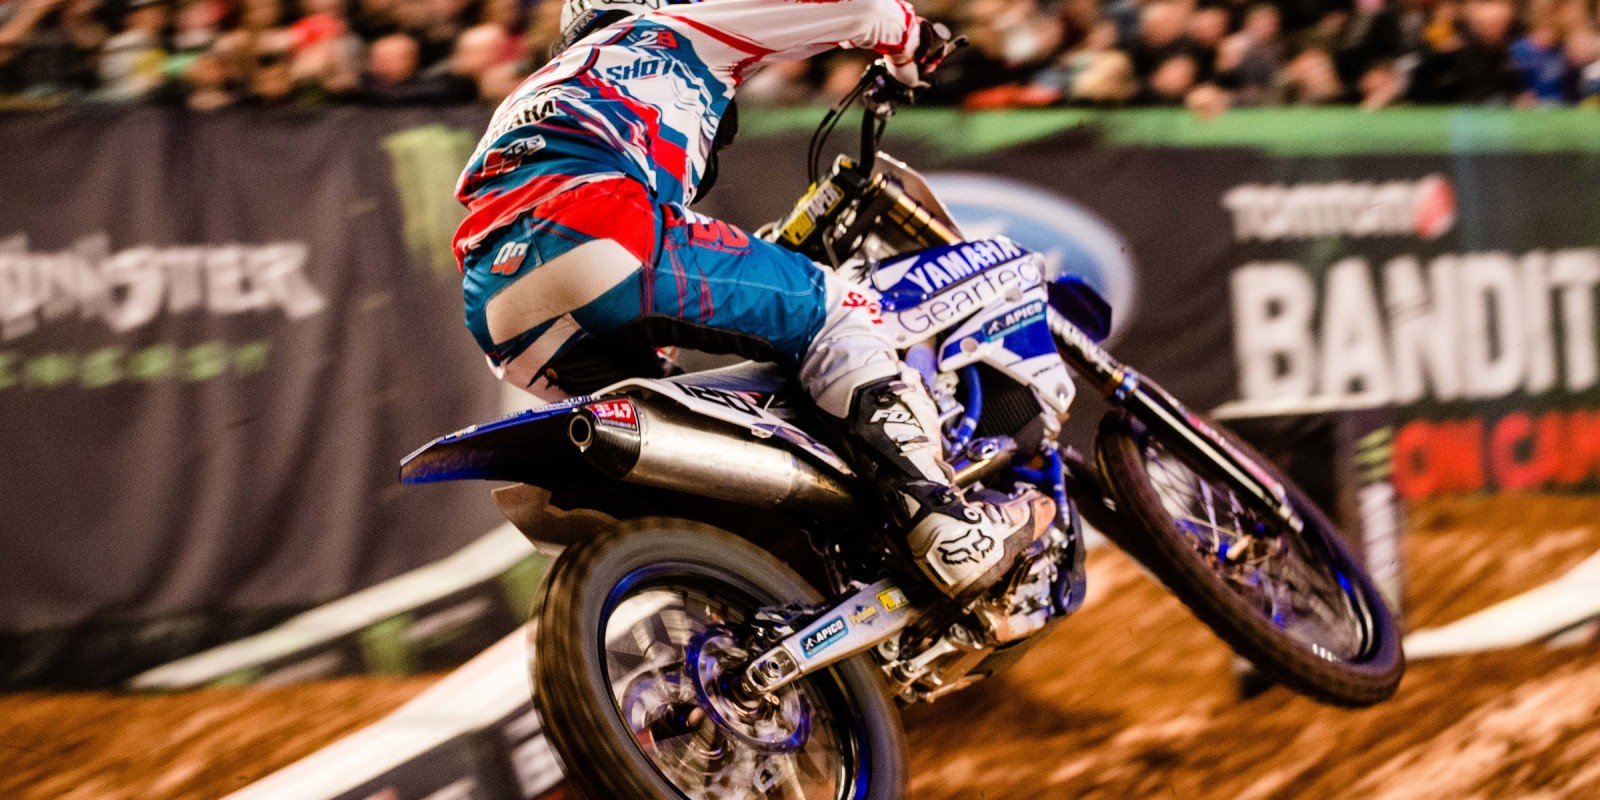 Cedric Soubeyras takes part in round 7 of AX